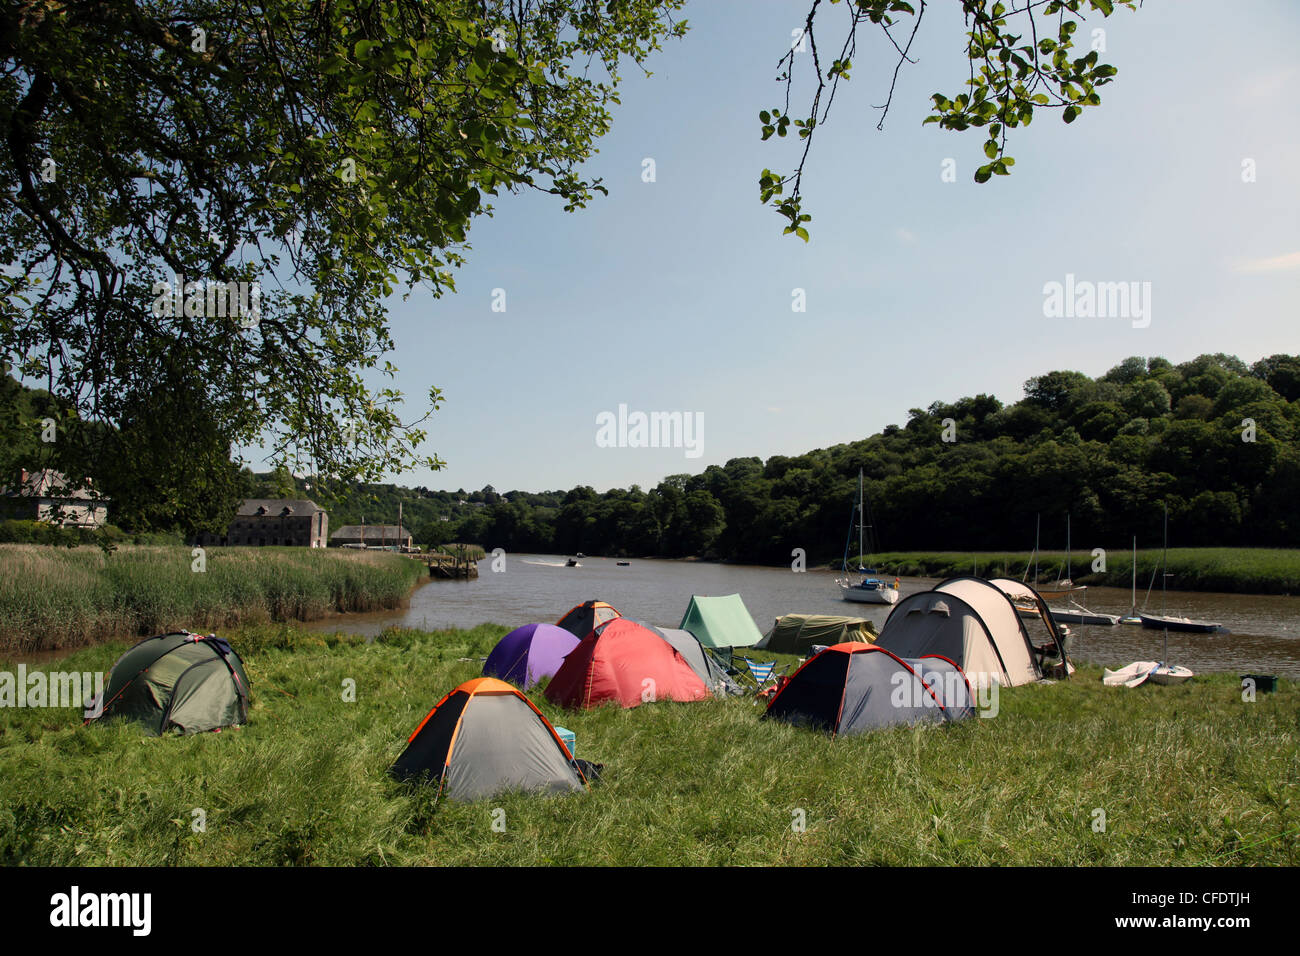 Camping at Cothele Quay, River Tamar, Cornwall, England, United Kingdom, Europe - Stock Image